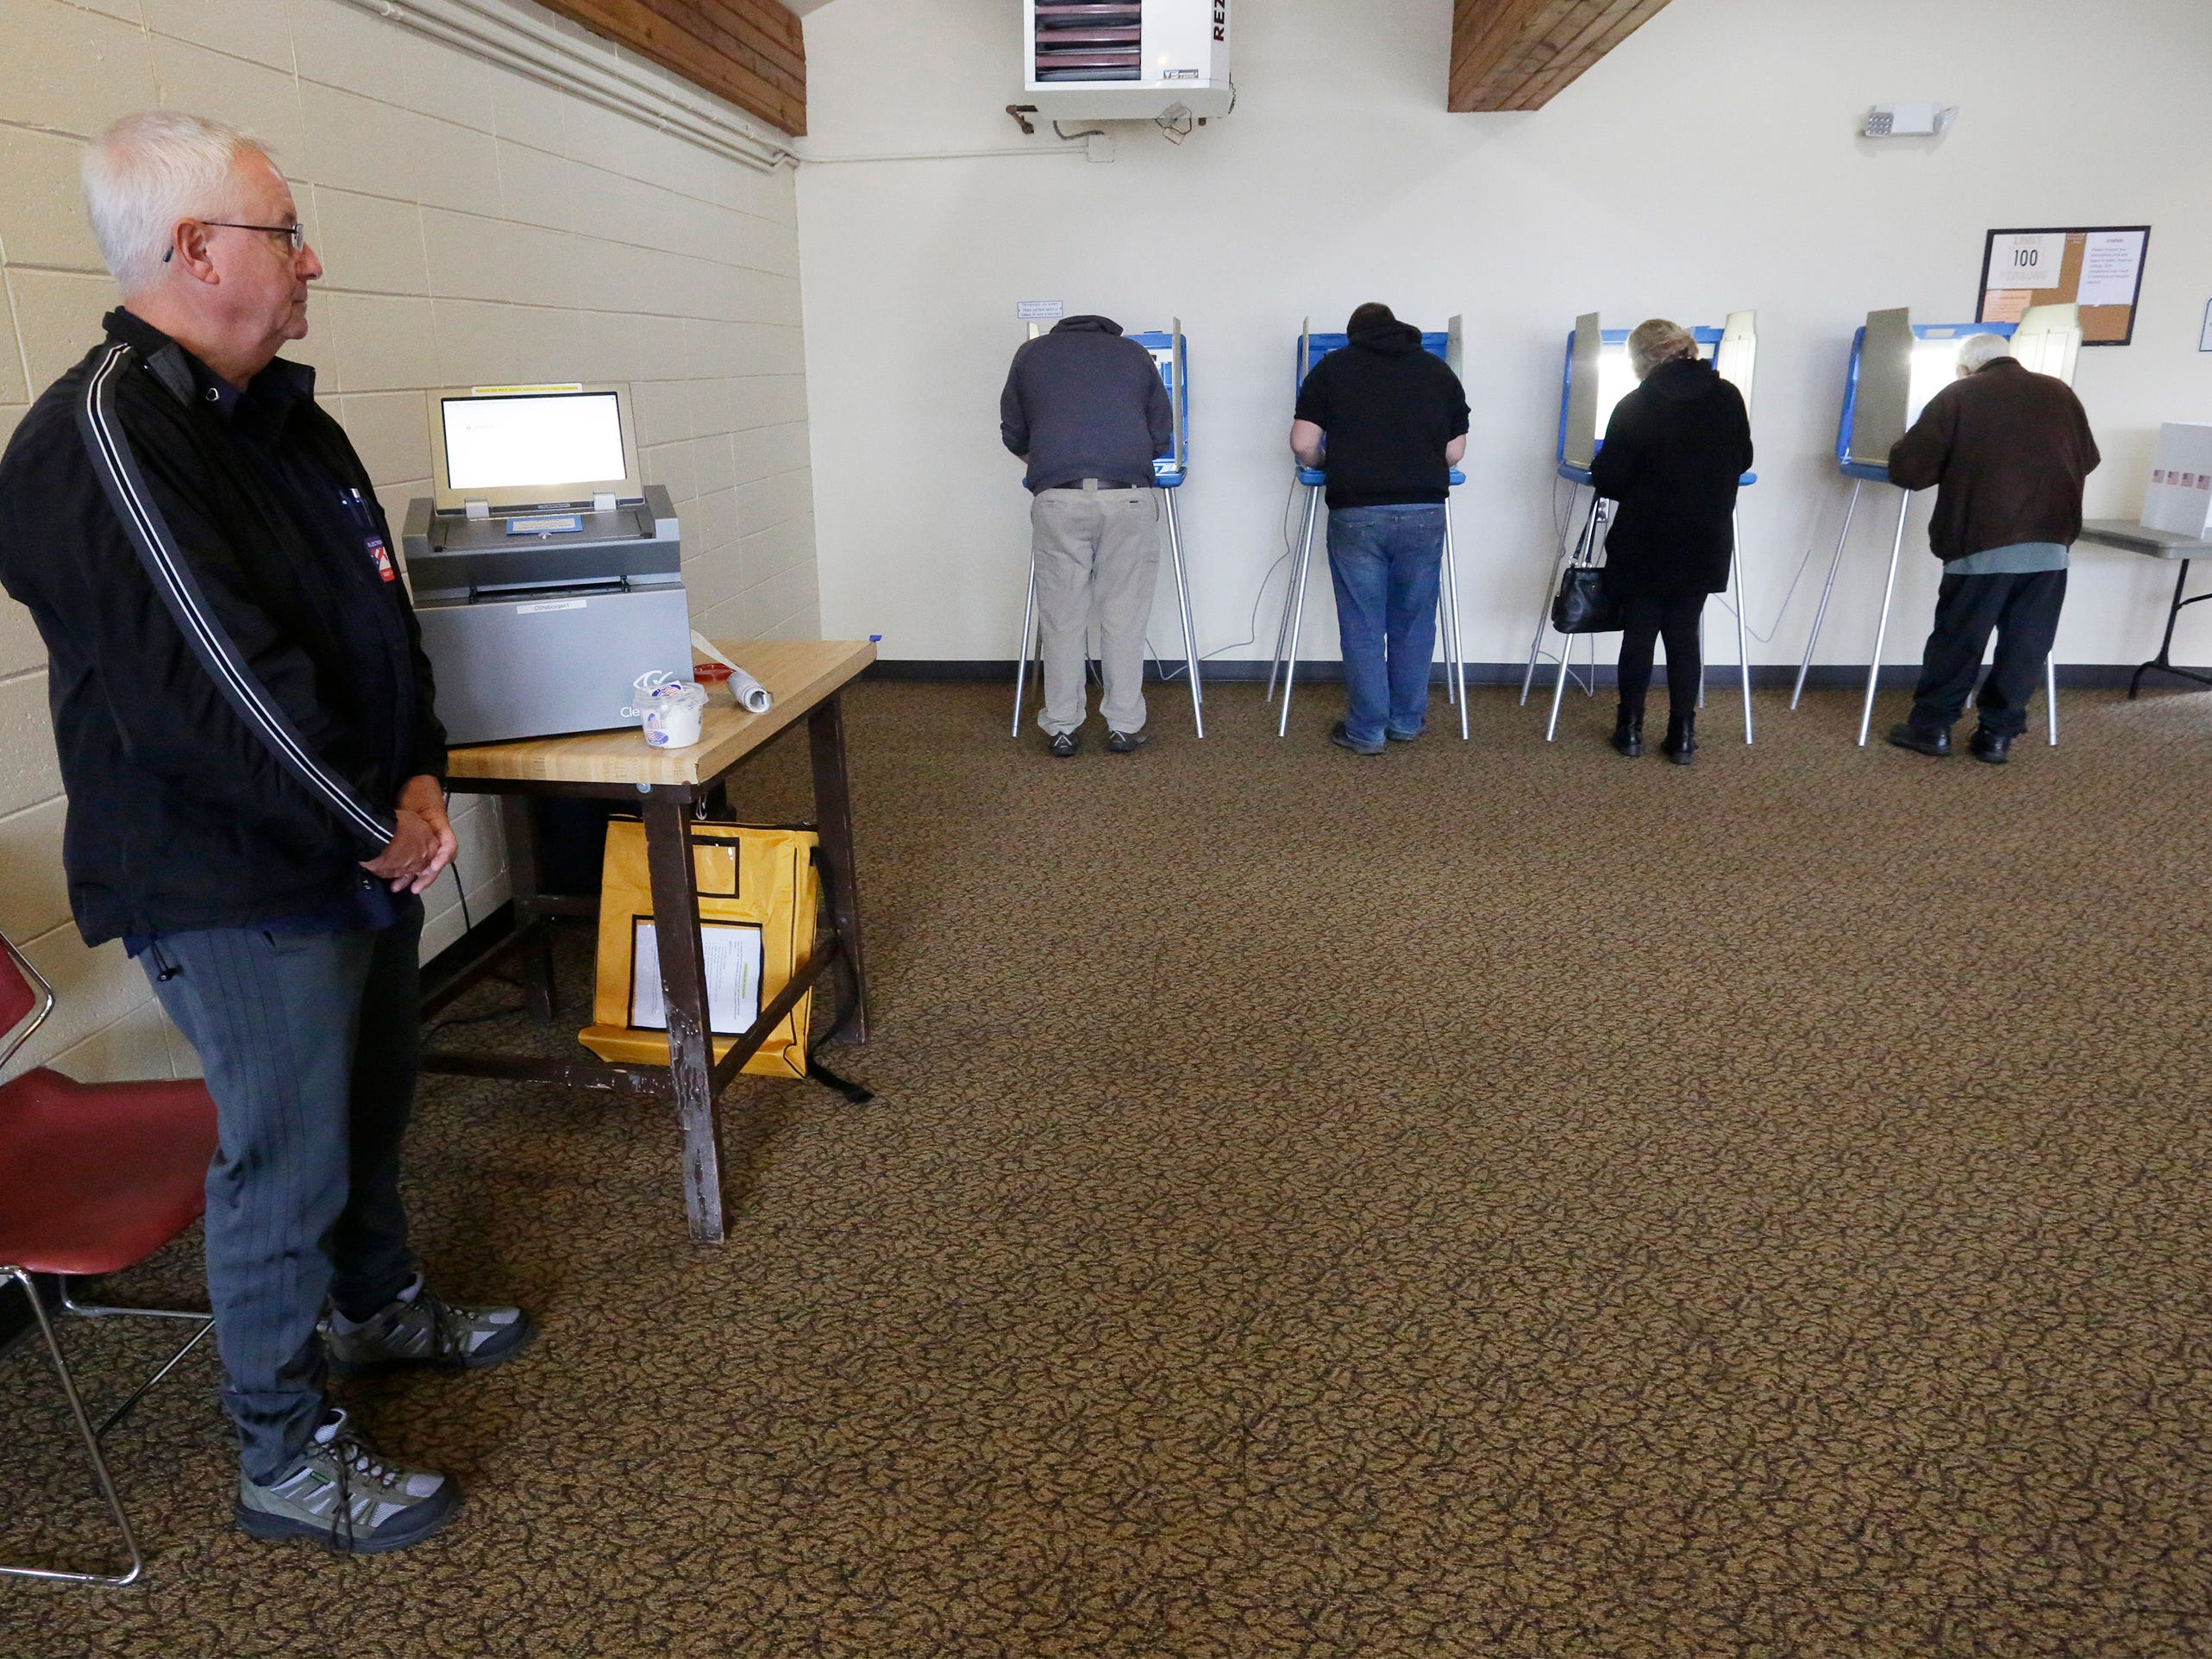 Poll worker Dan Dever, left, waits for voters to complete their ballots at the Quarryview Center polls, Tuesday, April 2, 2019, in Sheboygan, Wis.